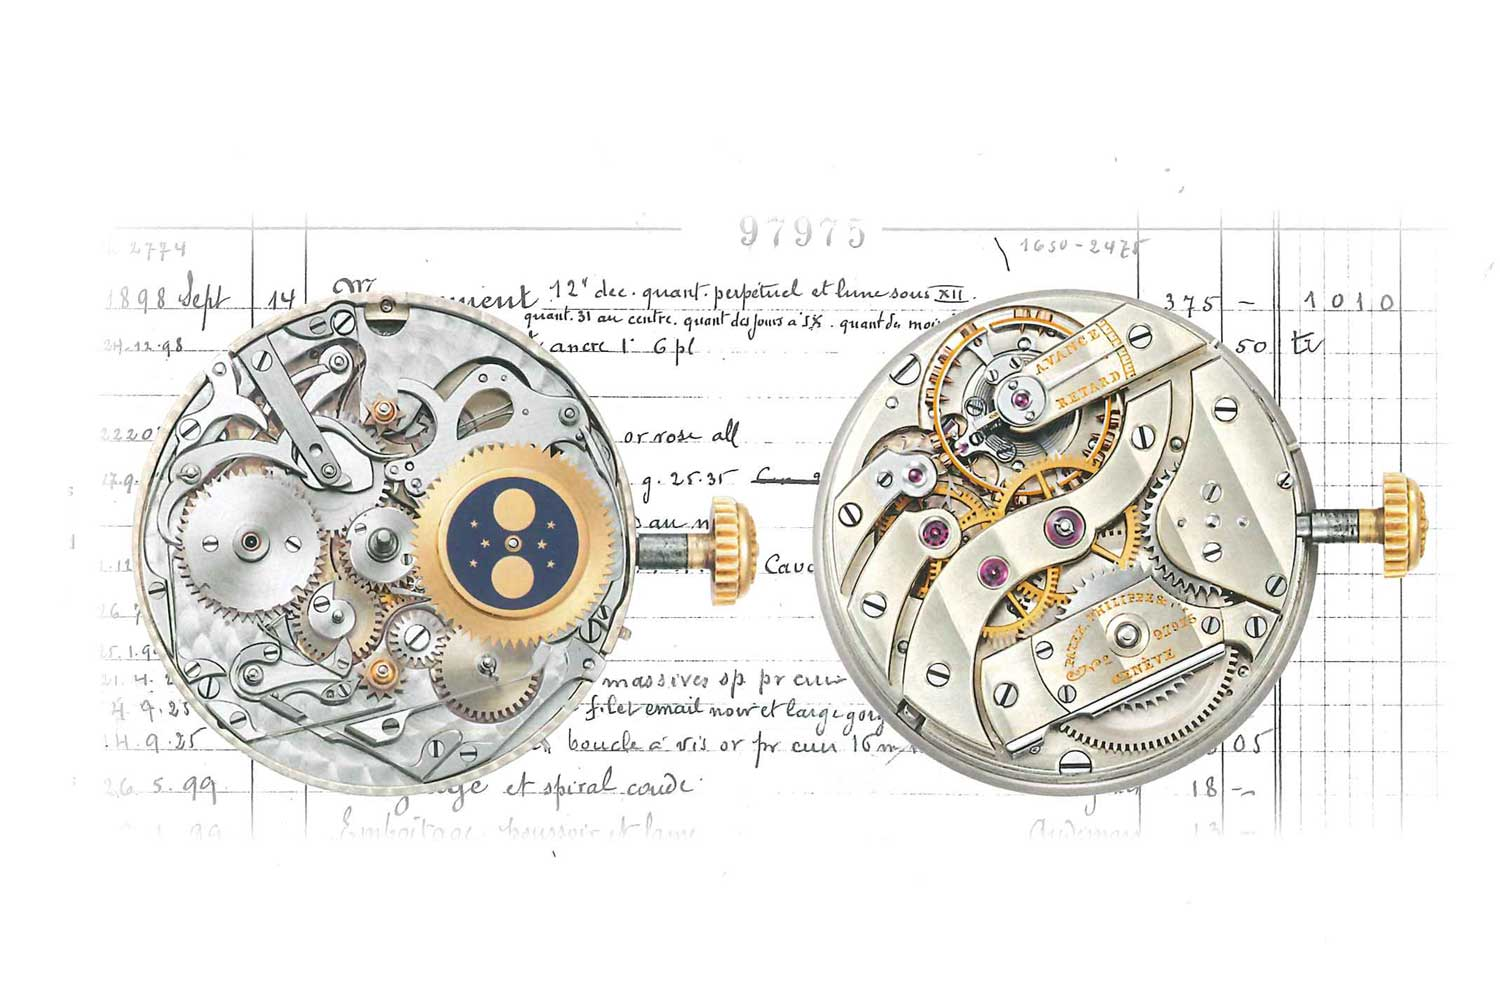 An illustration of the movement inside of the Patek Philippe 97975: The First Wristwatch with Perpetual Calendar (Image © Patek Philippe)